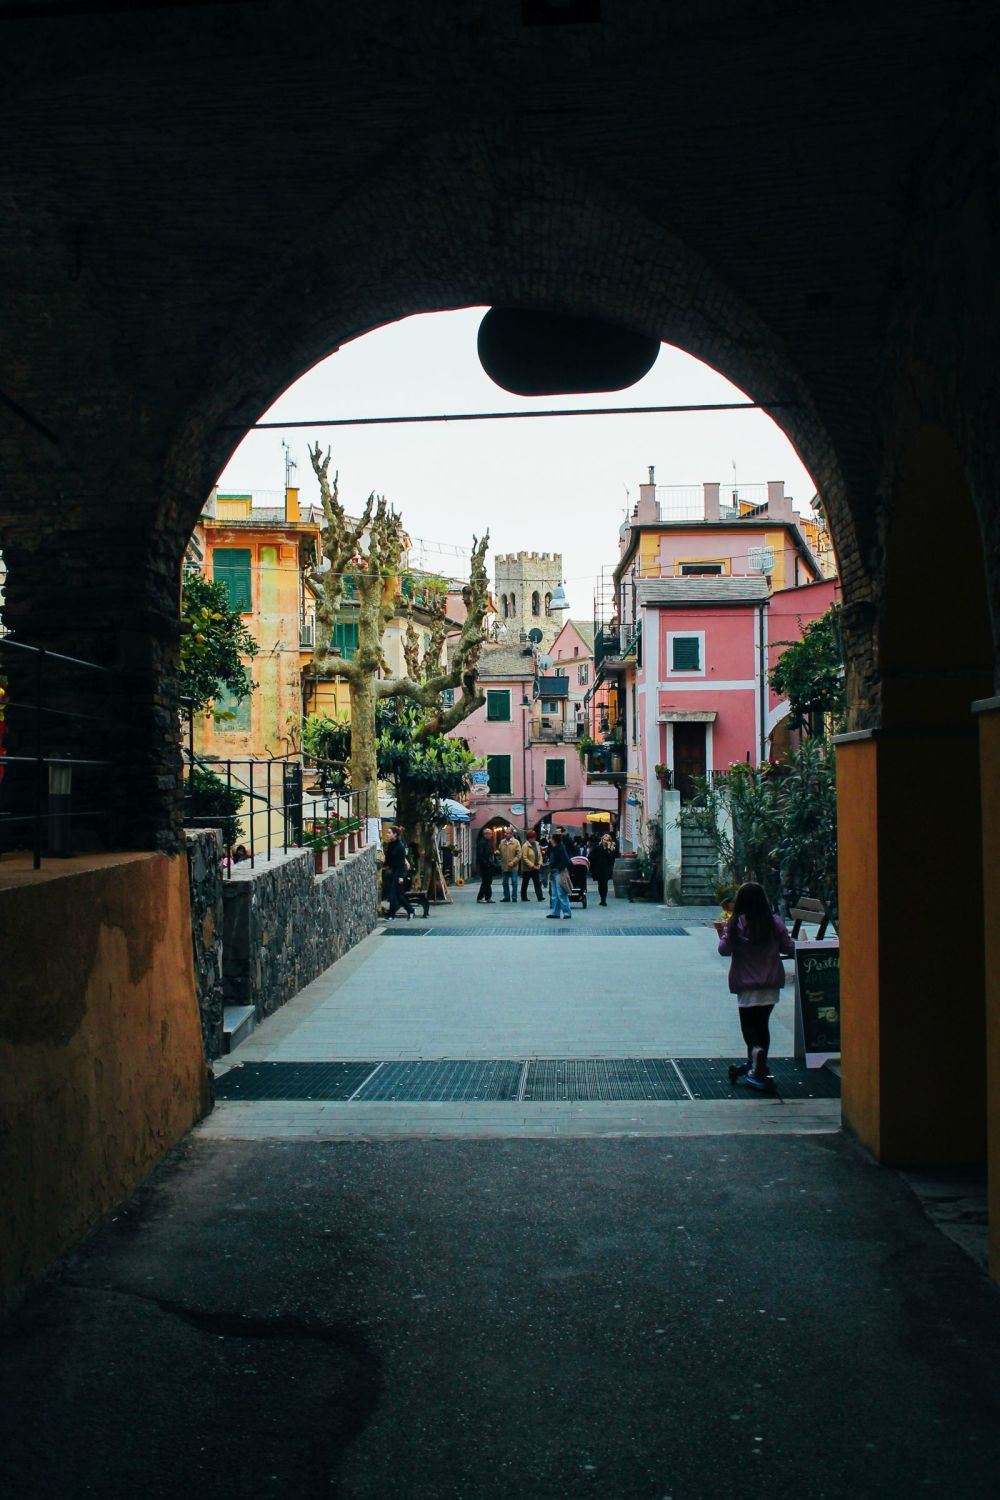 Monterosso al Mare in Cinque Terre, Italy - The Photo Diary! [5 of 5] (2)